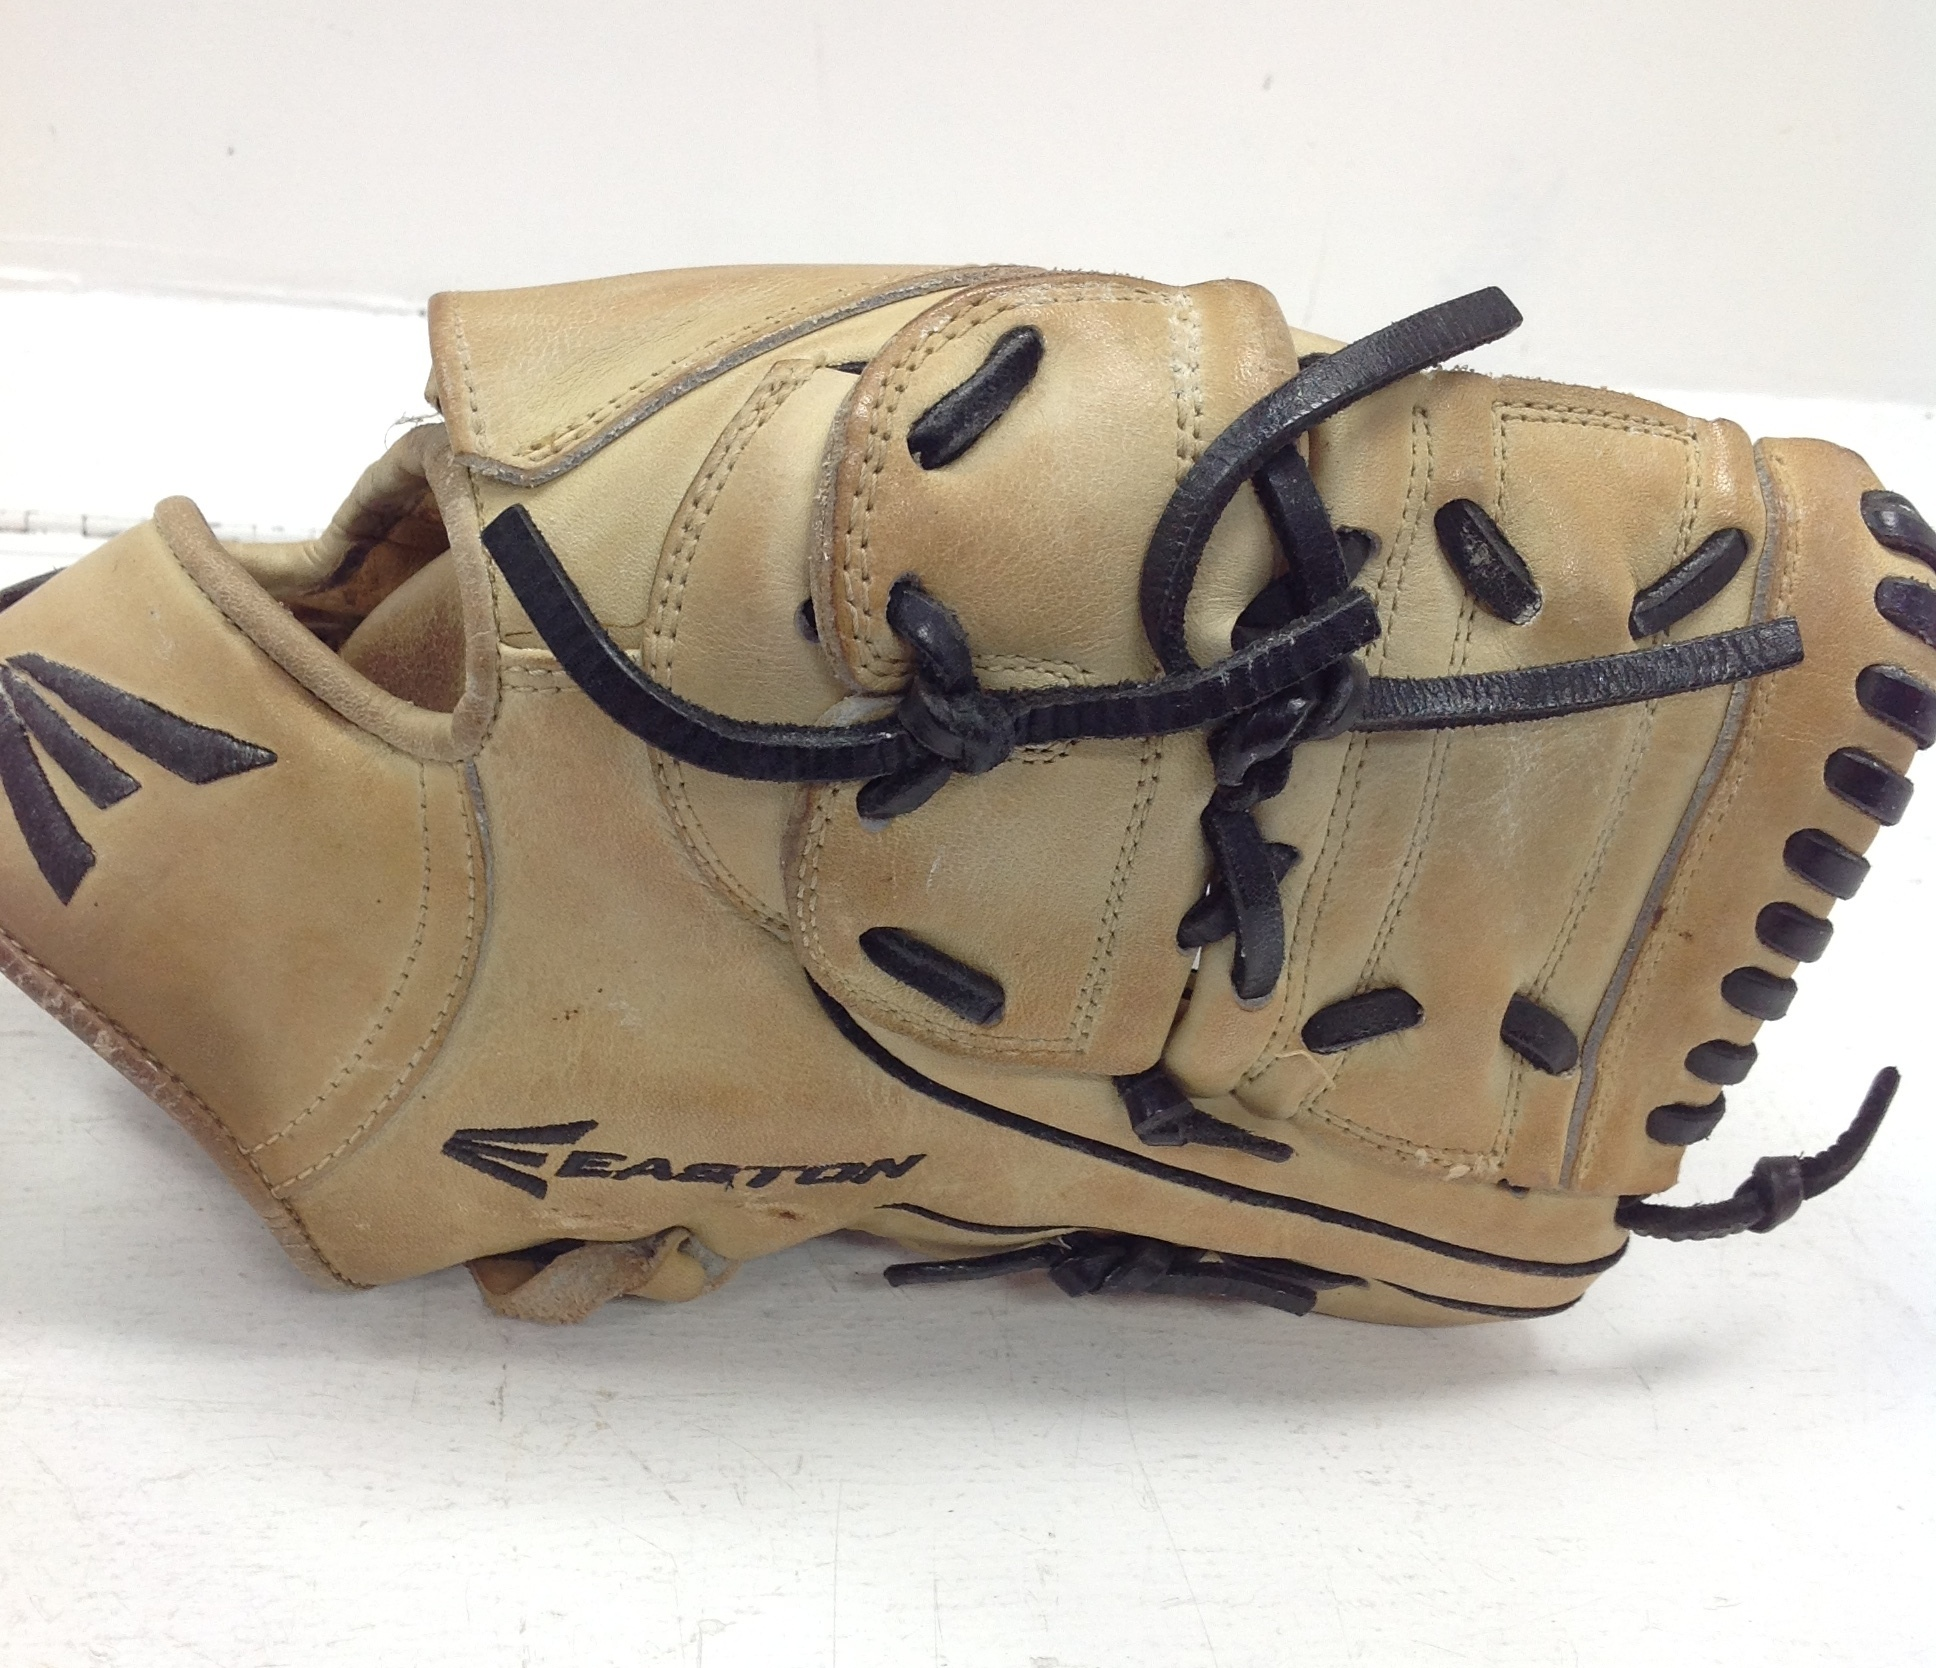 EASTON E PRO RIGHT HANDED THROWER LEATHER BASEBALL GLOVE 12